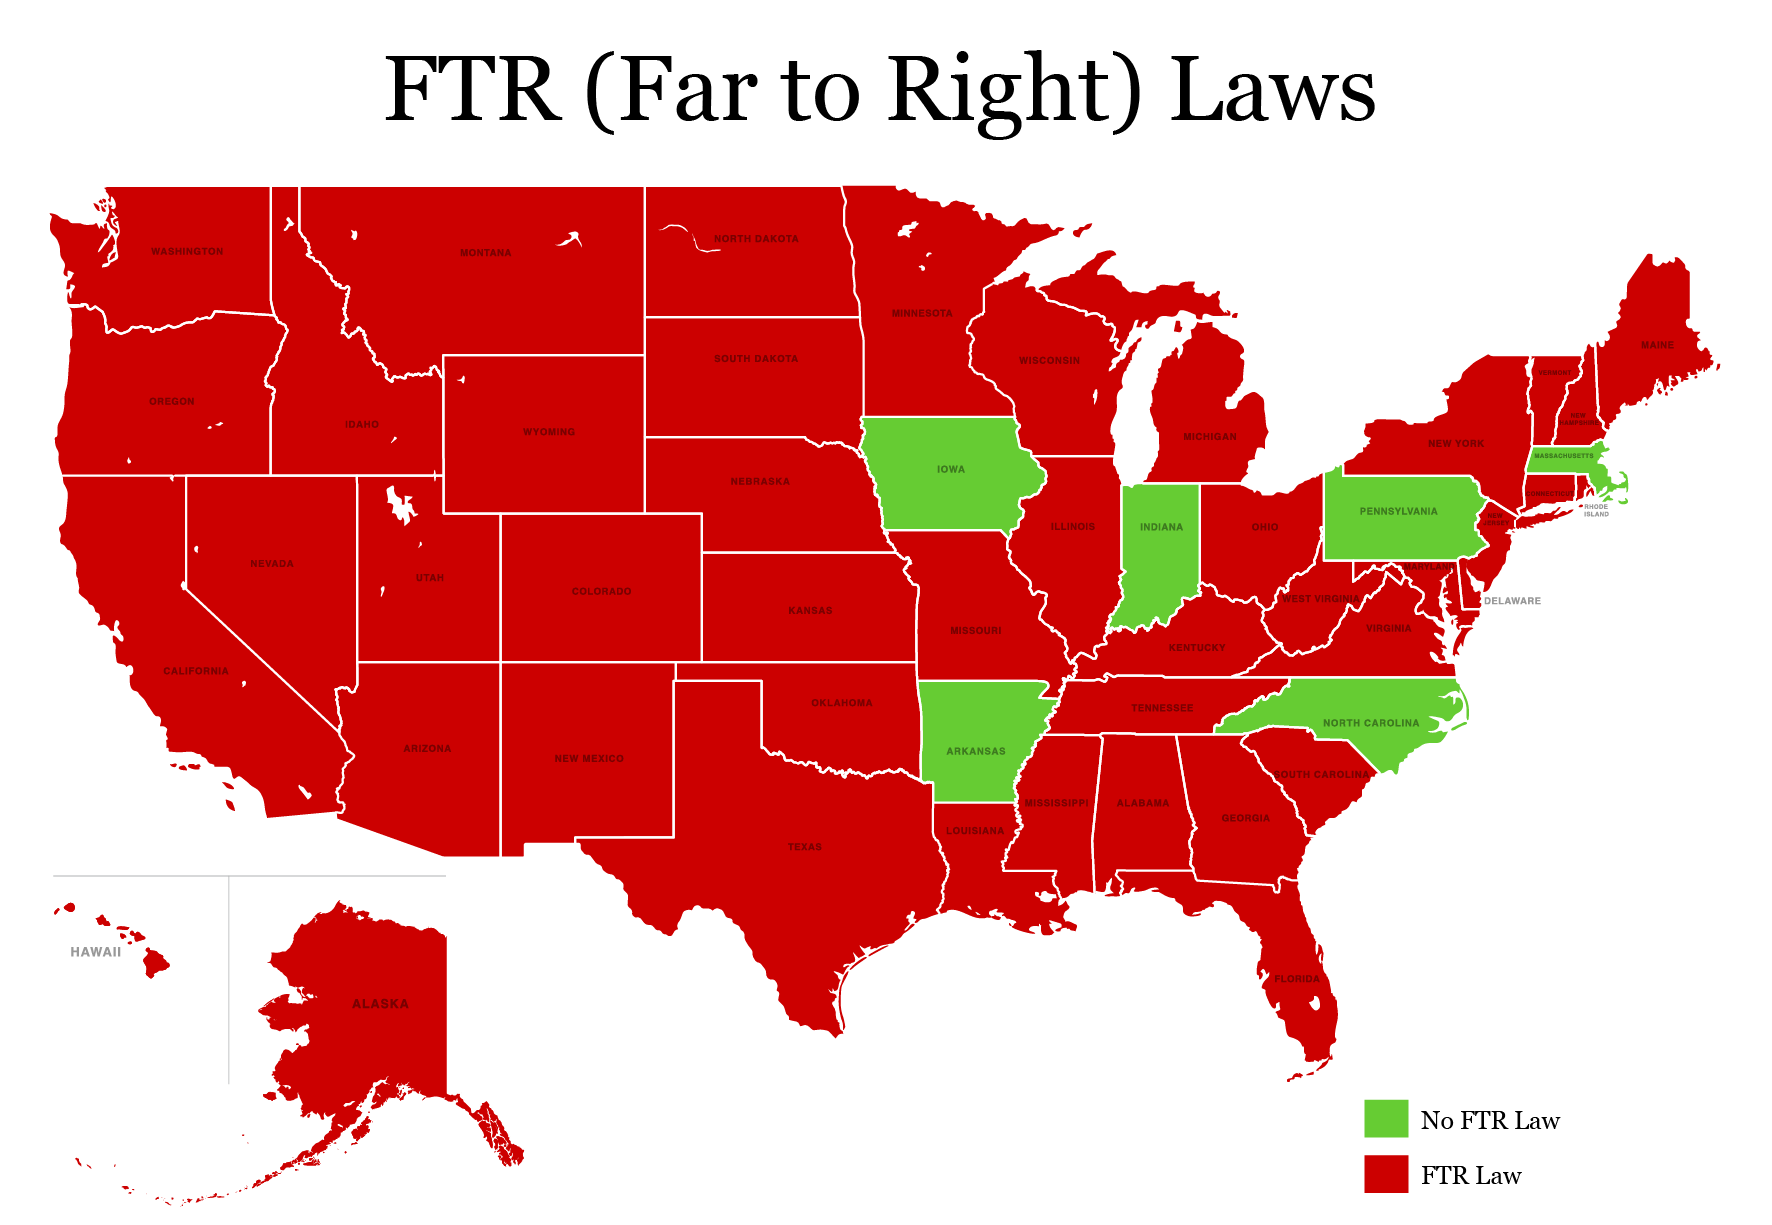 states with FTR laws